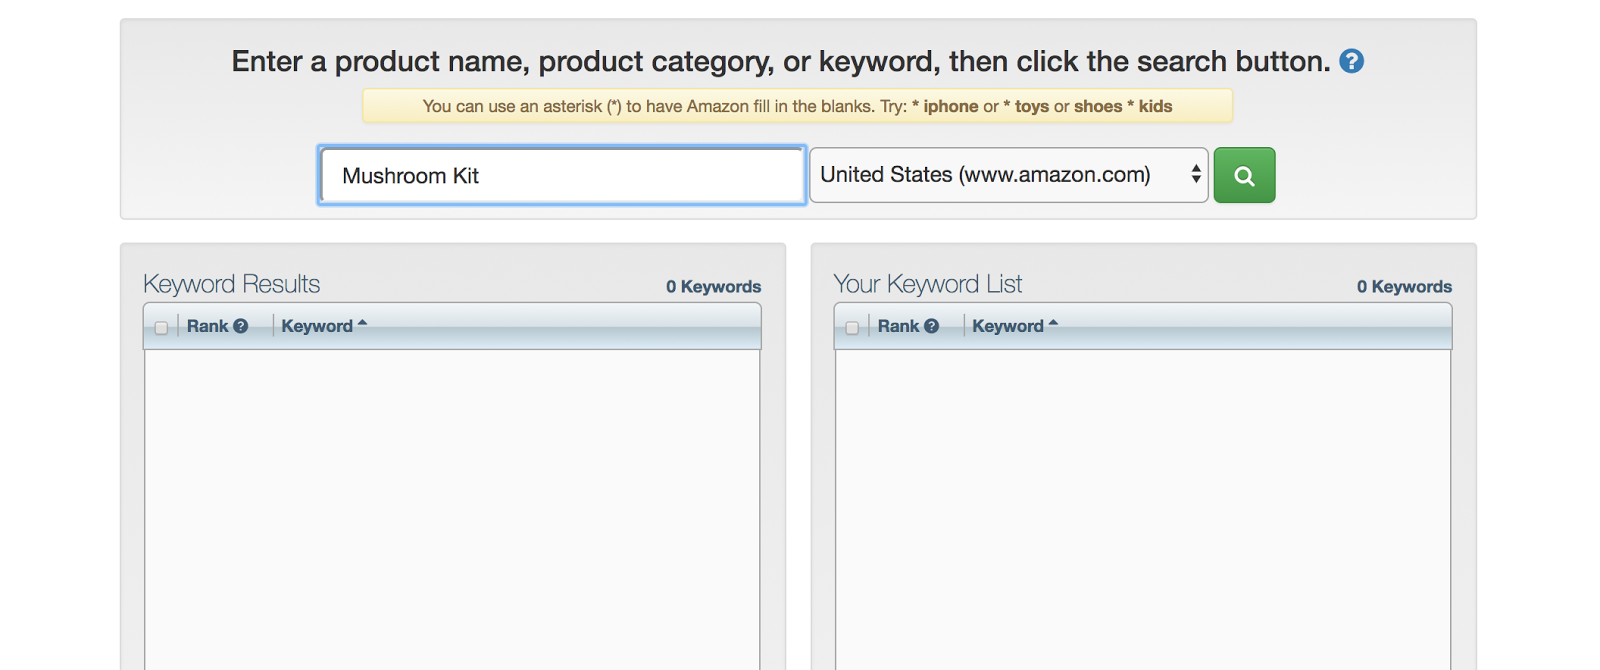 ...enter the product name or title to begin search.